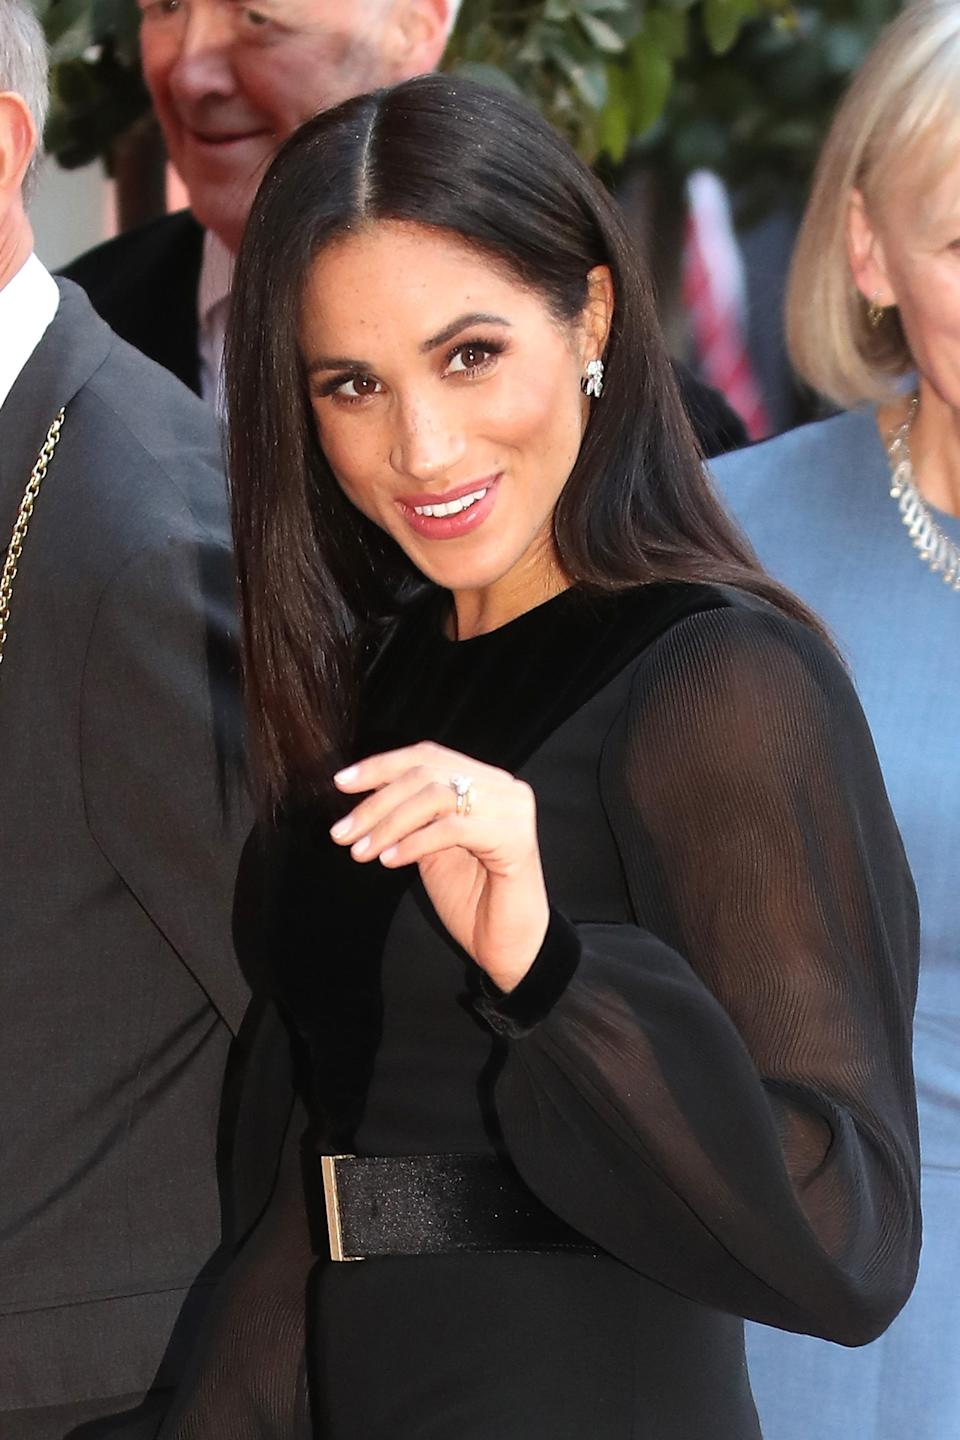 Meghan, Duchess of Sussex opens 'Oceania' at Royal Academy of Arts on September 25, 2018 in London, England. 'Oceania' is the first-ever major survey of Oceanic art to be held in the United Kingdom.